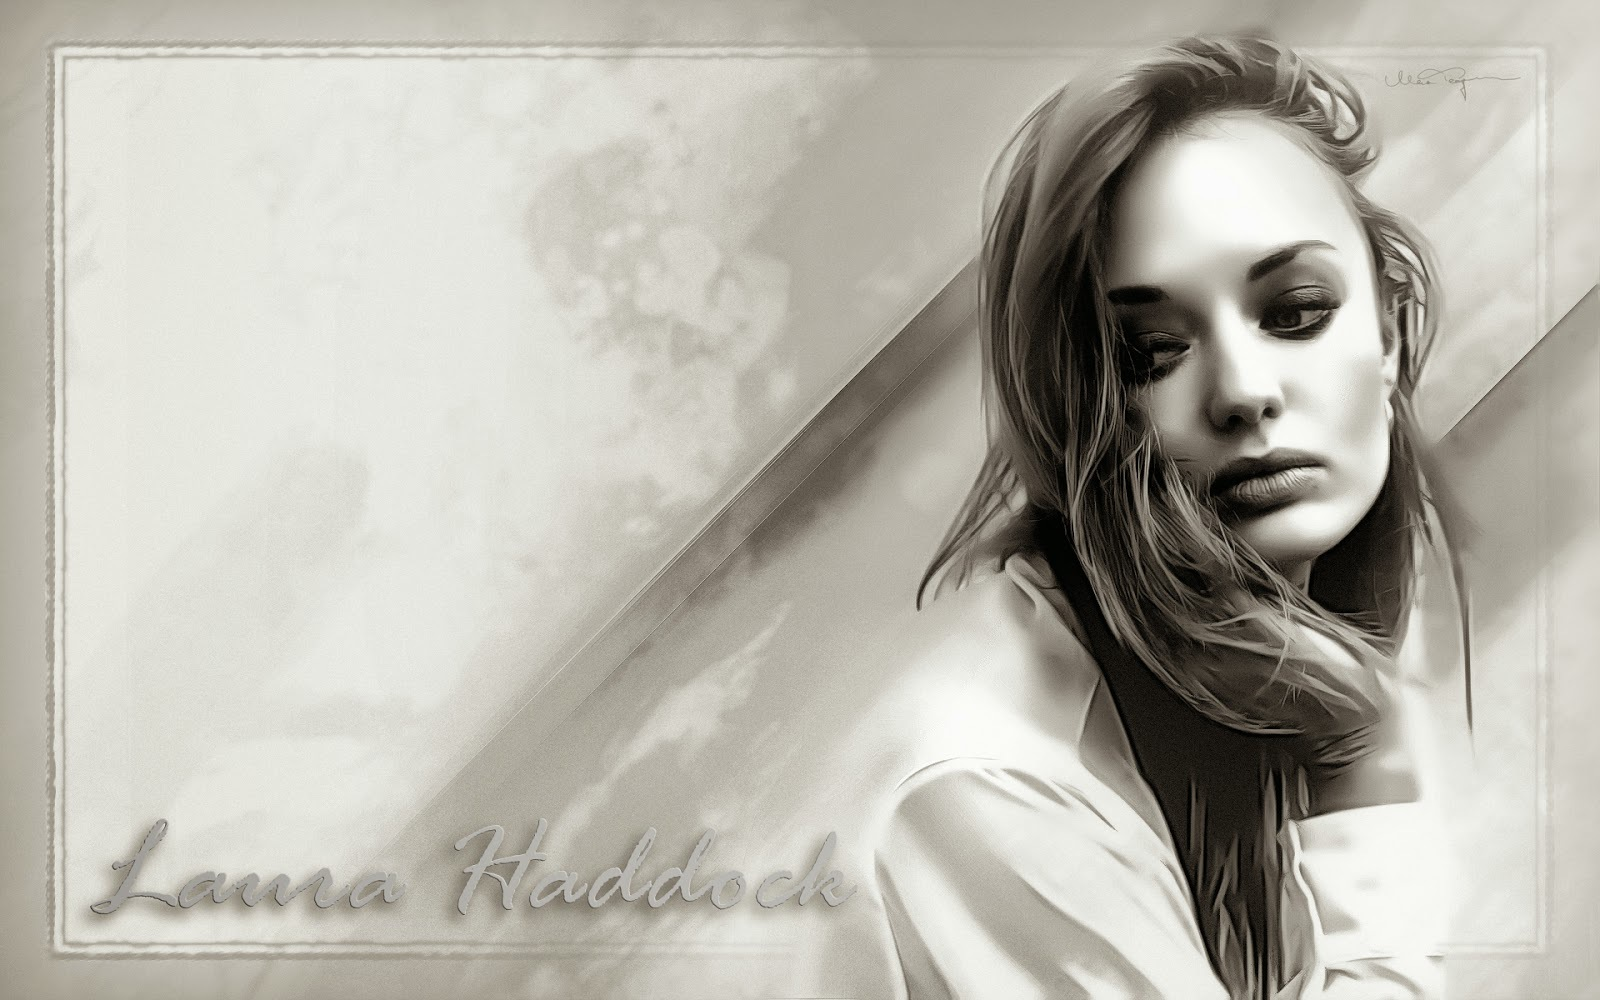 Laura Haddock Wallpapers Images Photos Pictures Backgrounds 1600x1000